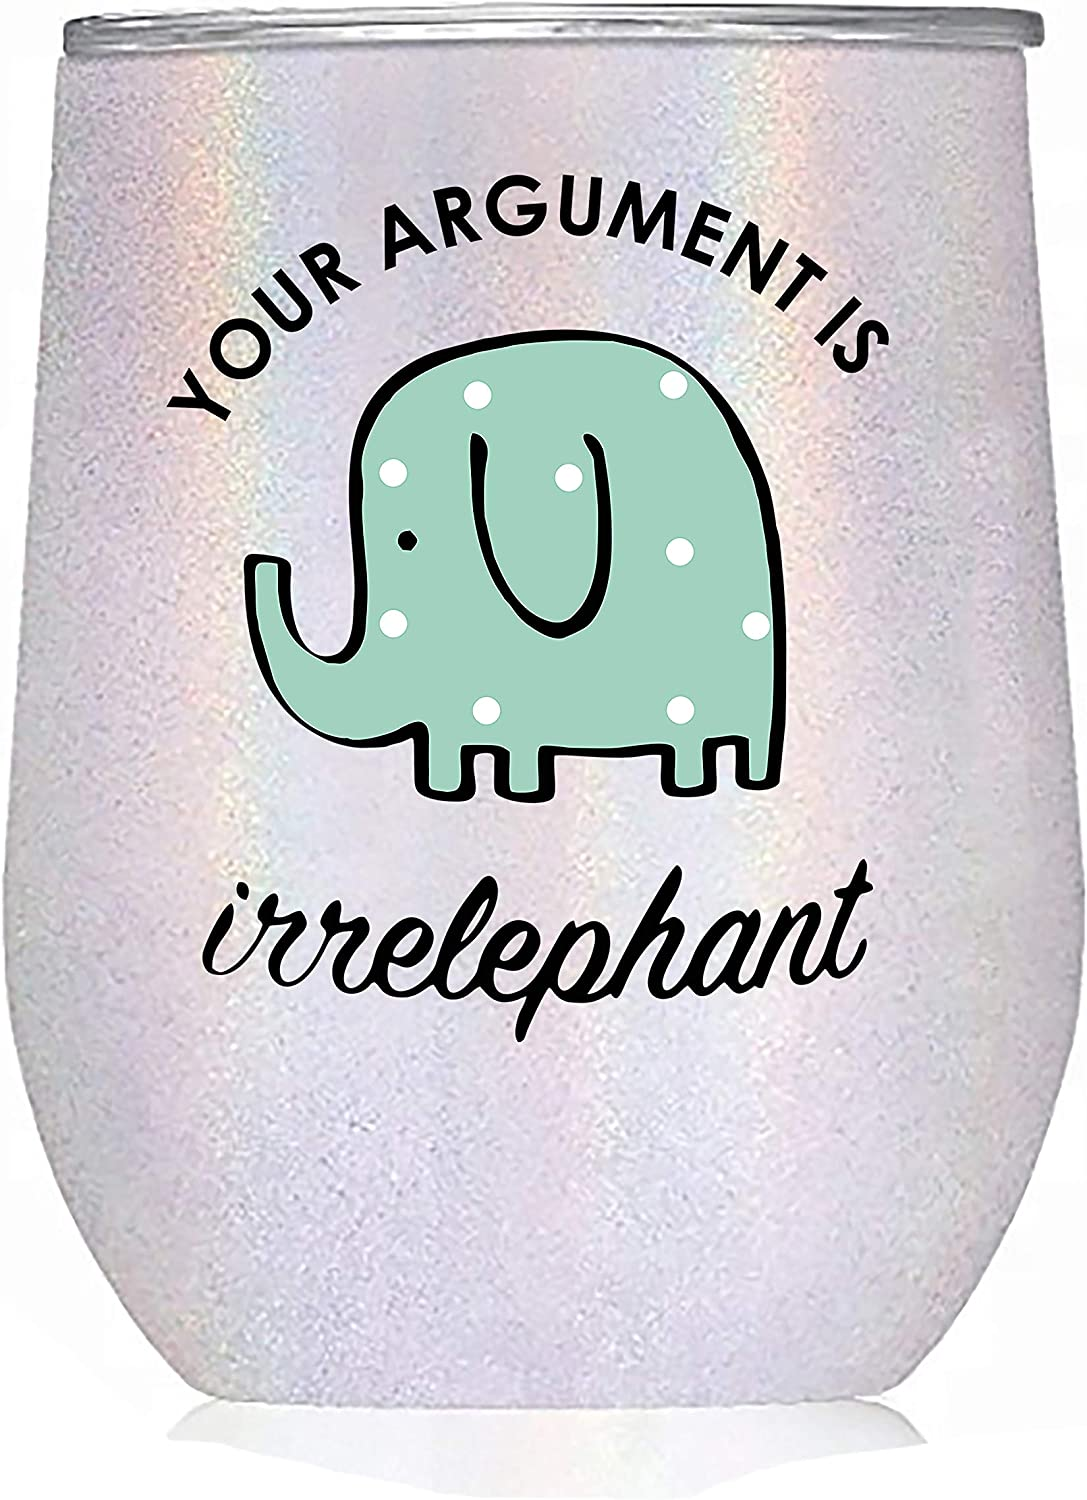 """Elephant Gifts"""" Your Argument is Irrelephant"""" - White Glitter Tumbler/Mug/Cup for Wine, Coffee and All Drinks - Funny Gifts for Her, Him, Glass, Lovers, Women, Stuff, Decor, Lawyer"""